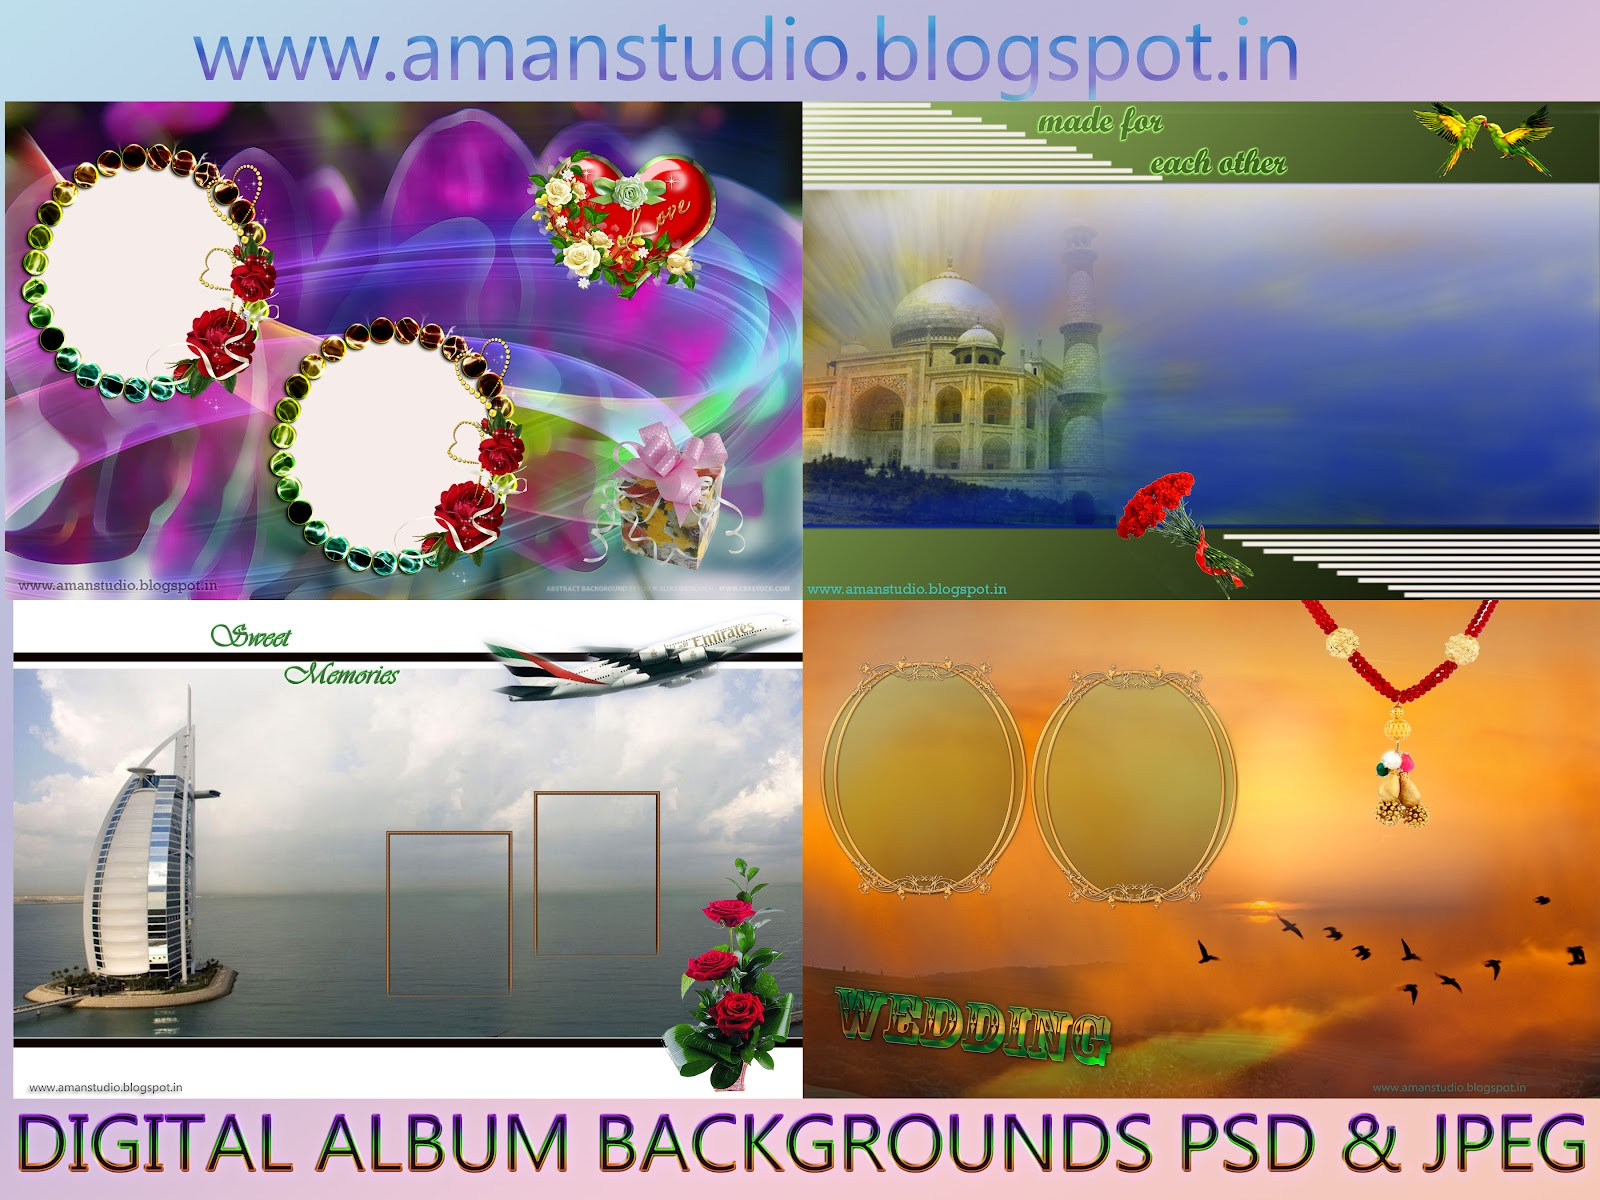 5 Aman Studio Background PSD Images